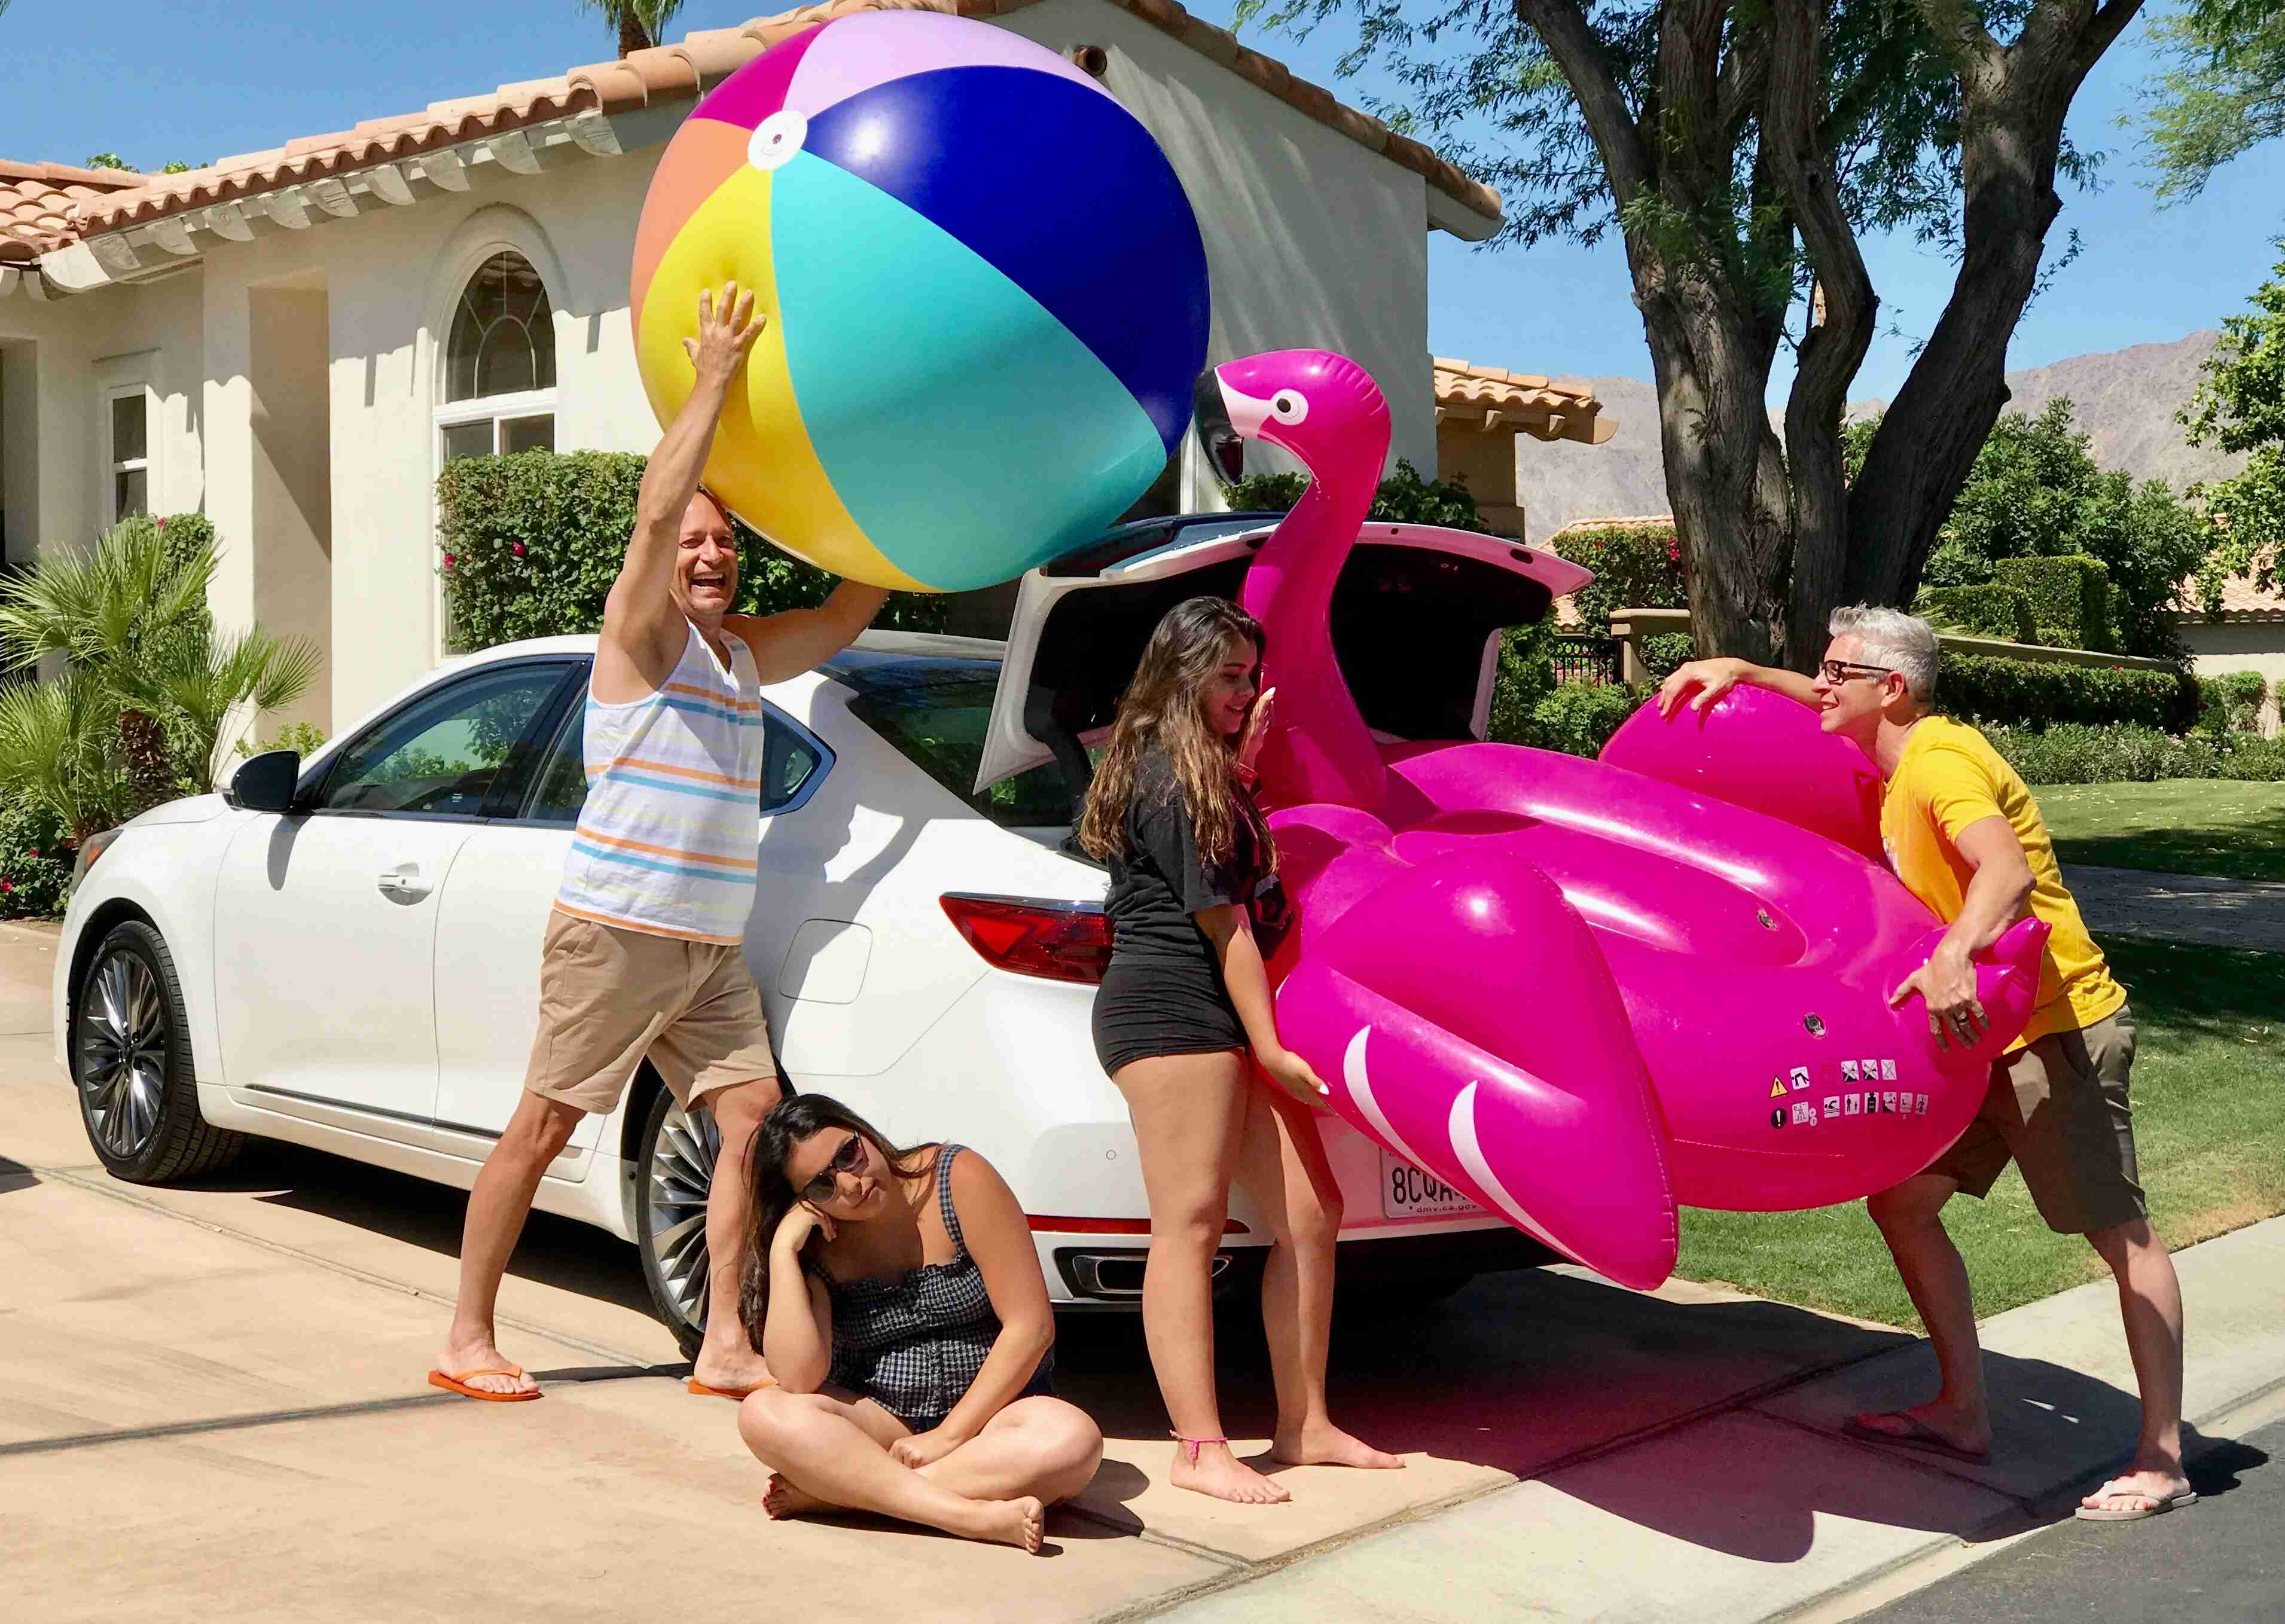 The pool toys never seem as big when you buy them, but when you try to bring them home from Palm Springs? Yeah, that.